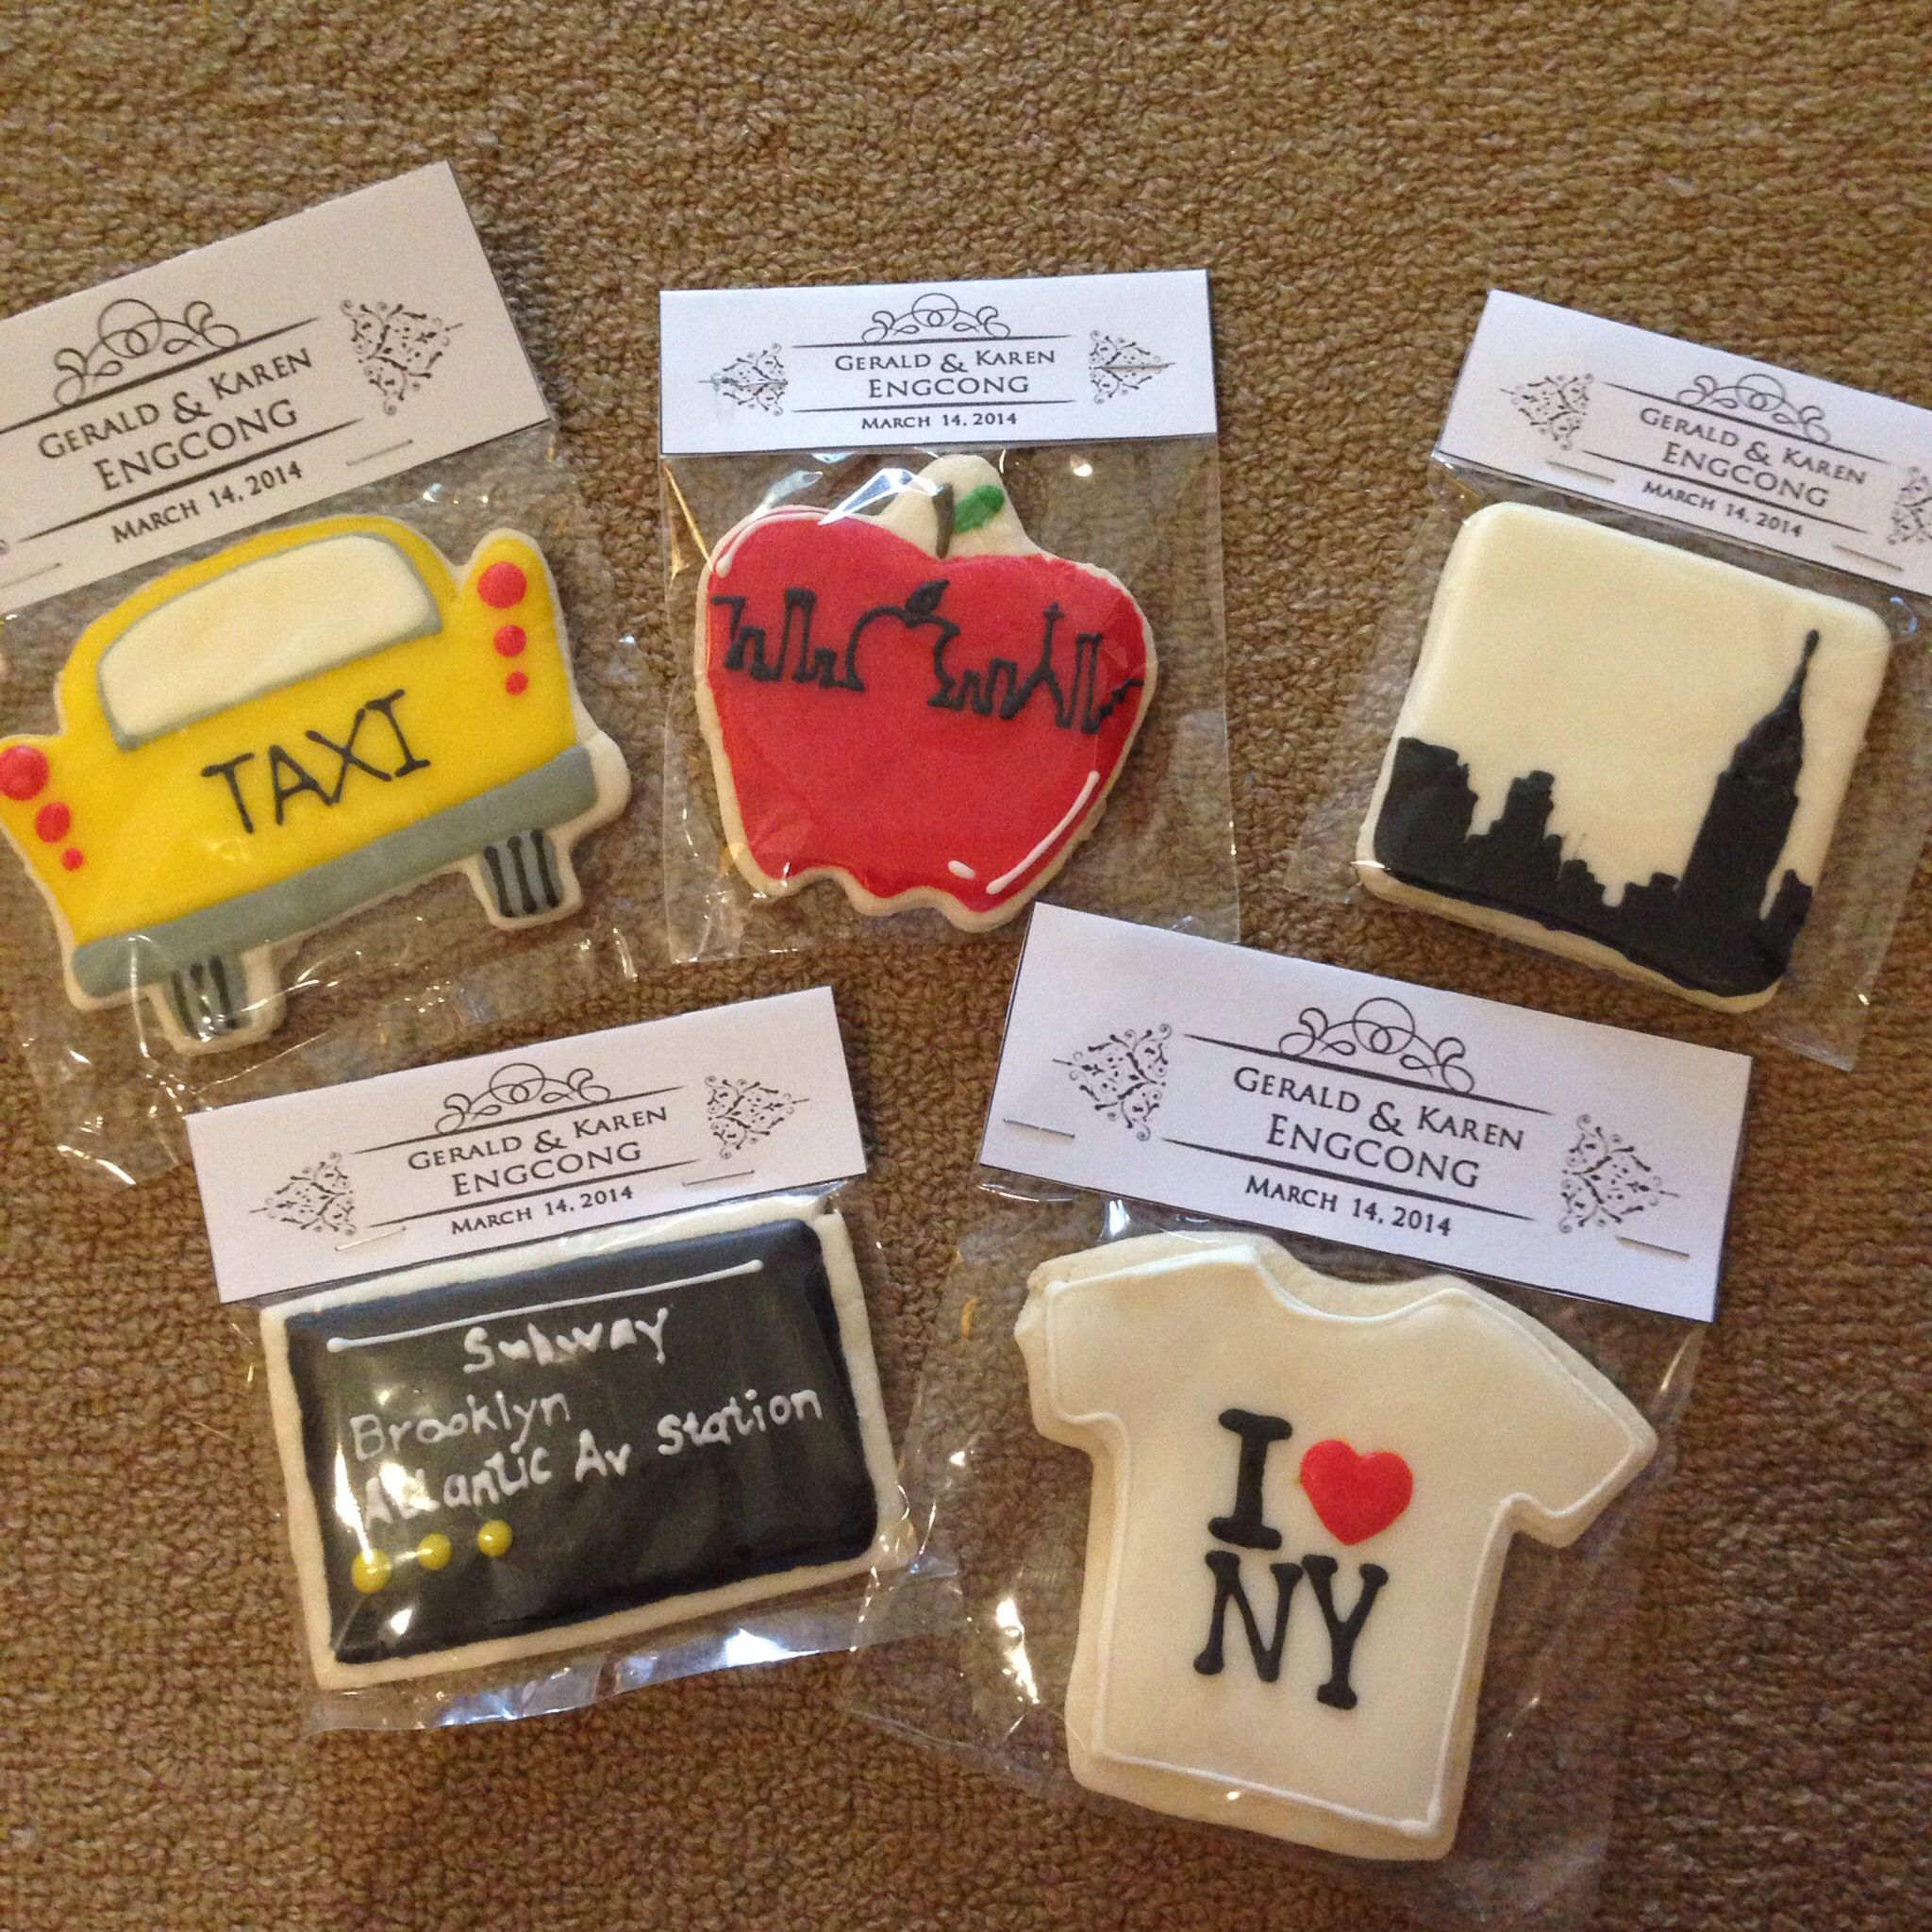 Custom made NY themed cookies as favors for our guests. #weddingfavors #NYthemedcookies  #awesomecookies Photo by #niceprintphotography